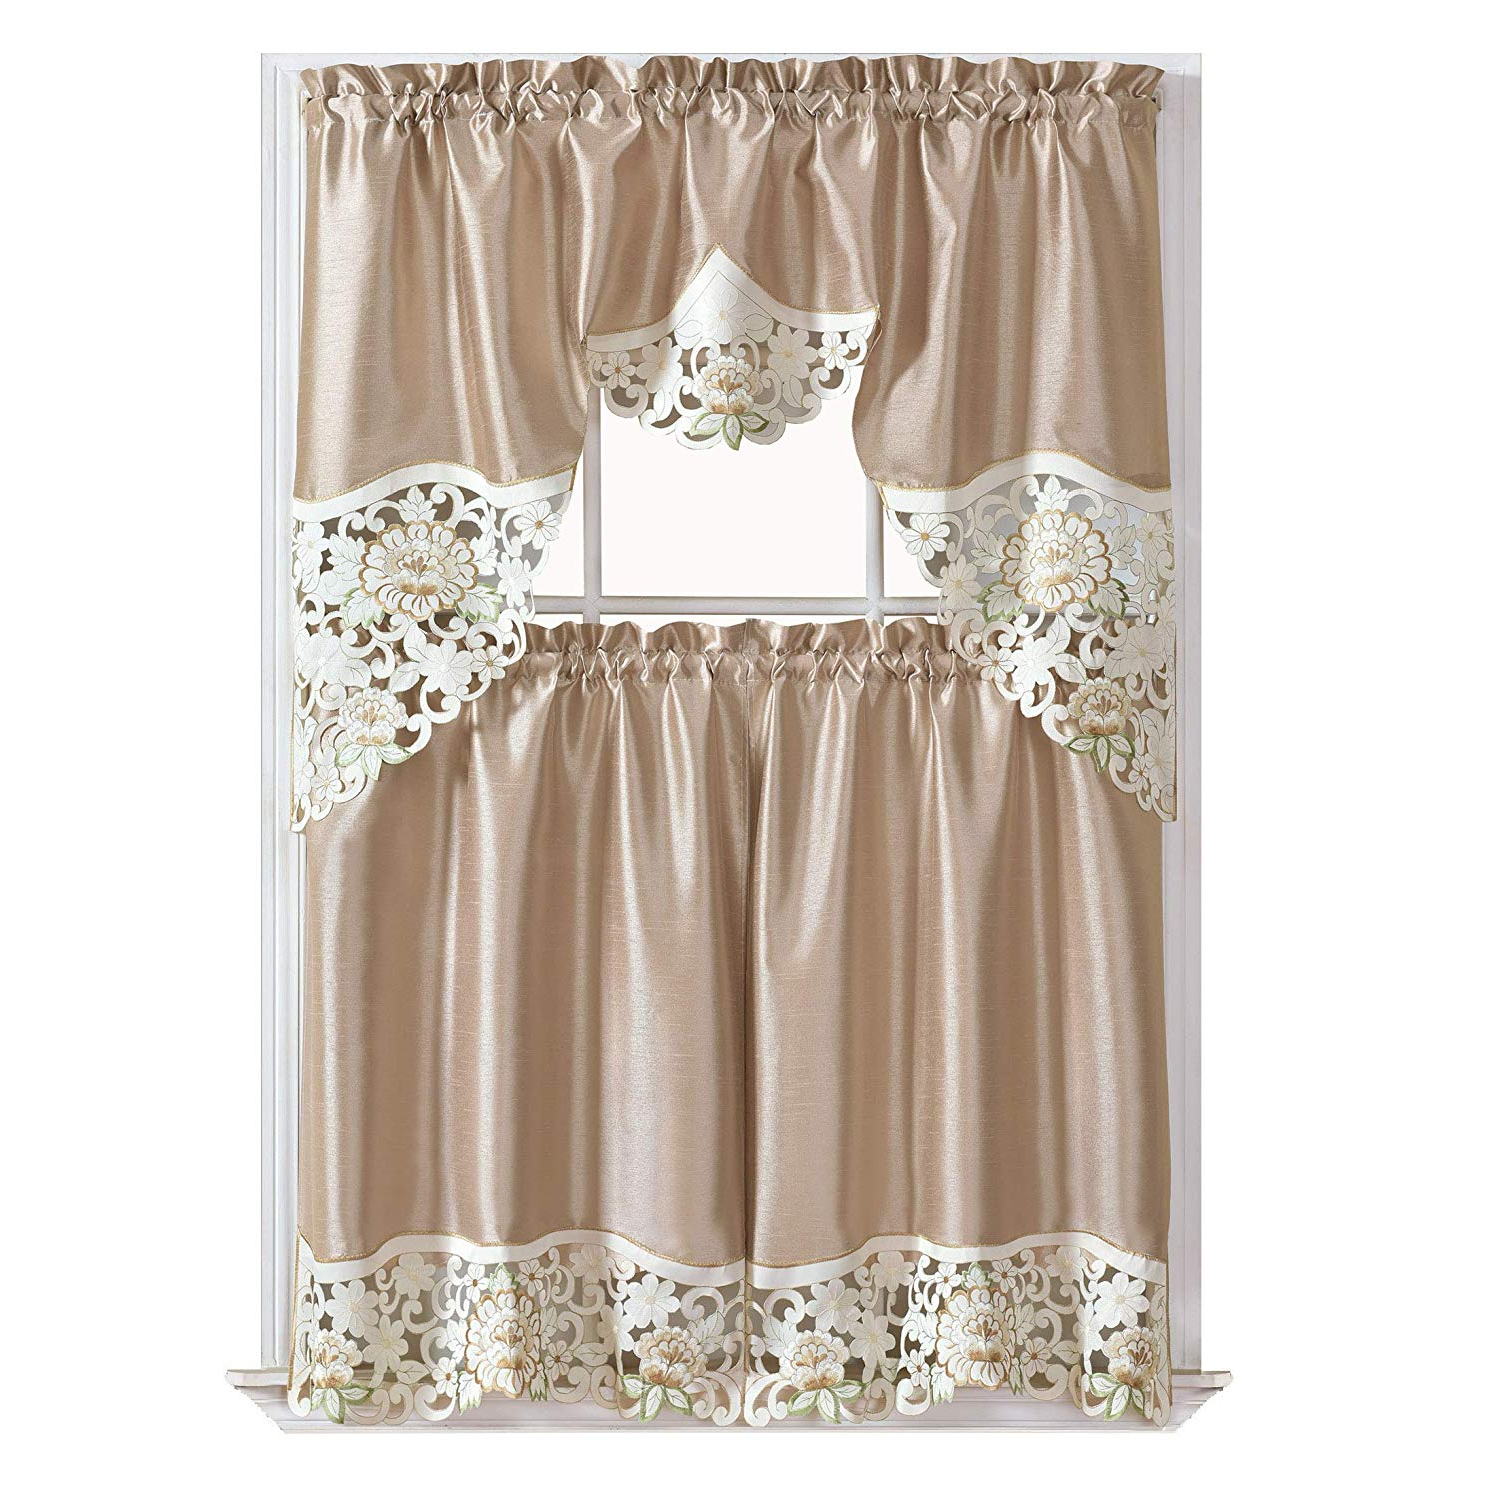 Gohd Golden Ocean Home Decor Summer Passion Kitchen Cafe Curtain Set Swag Valance And Tier Set (View 7 of 20)